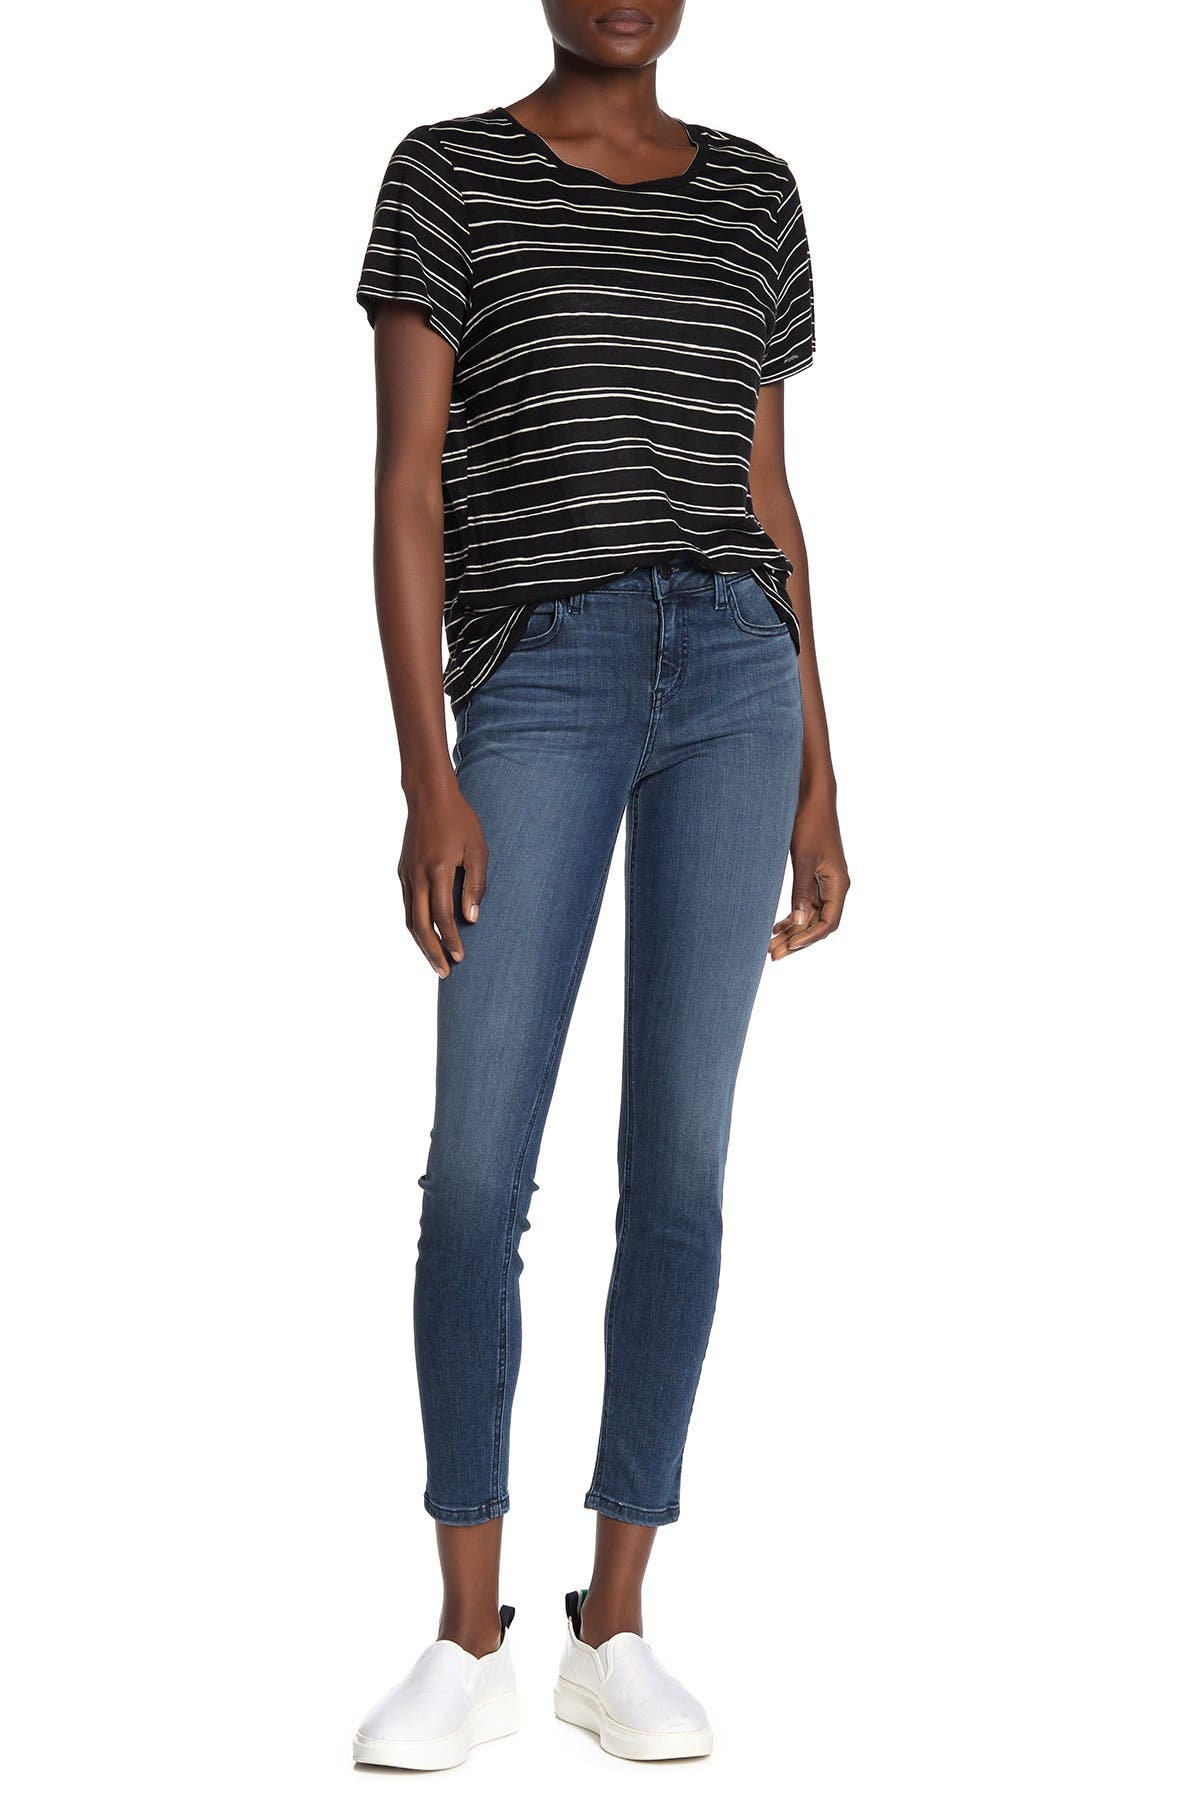 Image of Level 99 Tanya High Rise Ultra Skinny Jeans